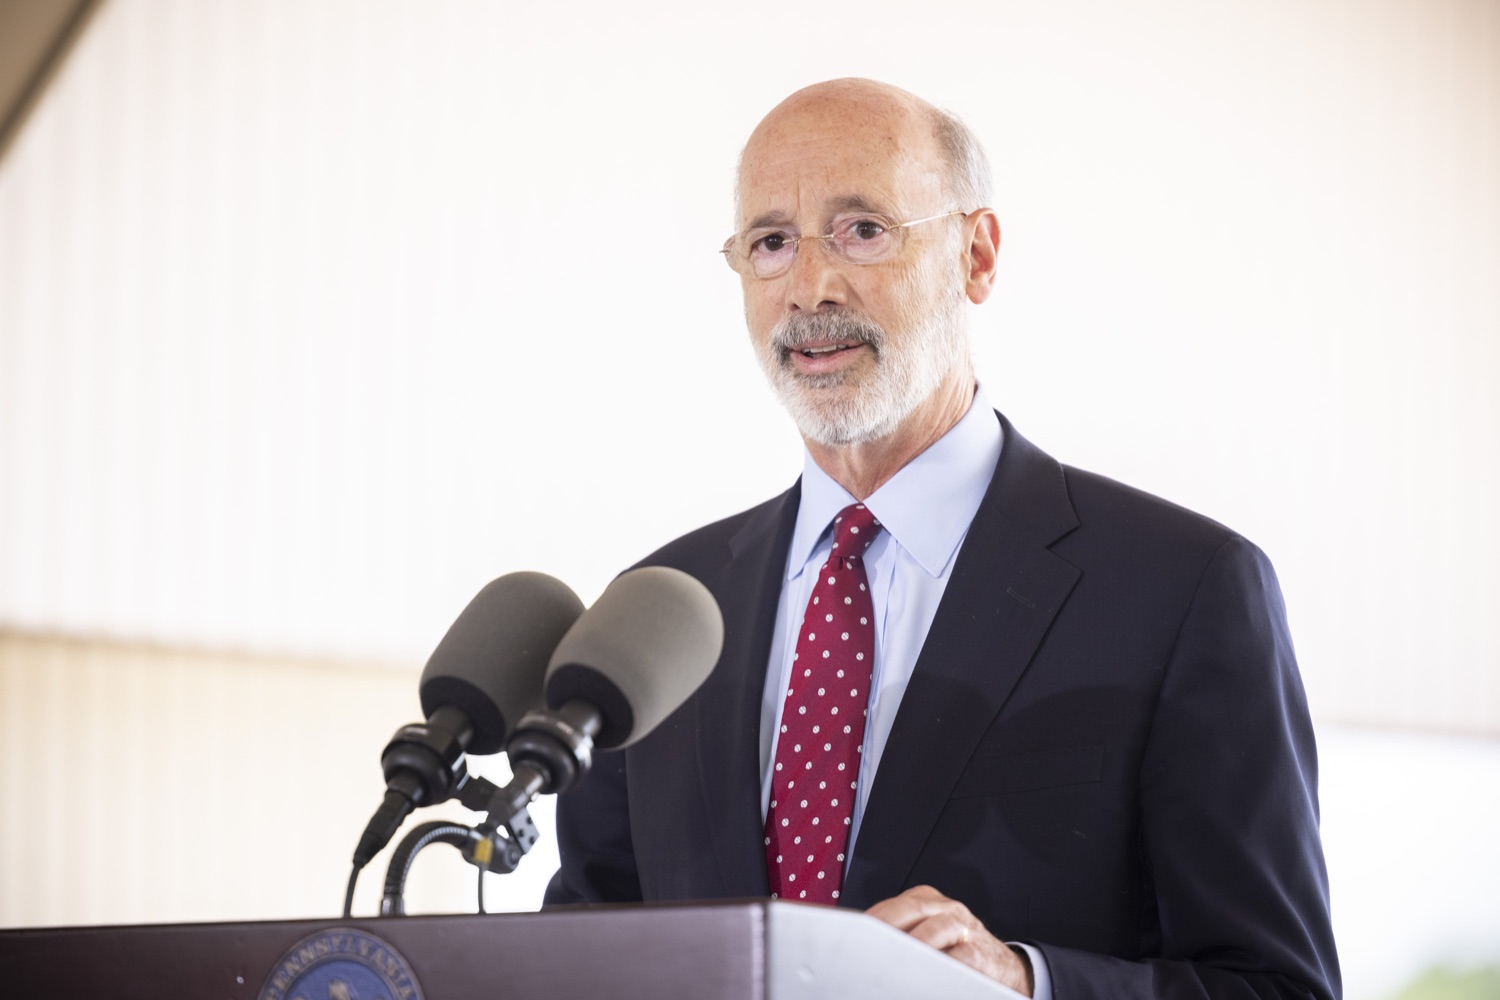 """<a href=""""https://filesource.wostreaming.net/commonwealthofpa/photo/18932_gov_chirp_dz_015.jpg"""" target=""""_blank"""">⇣Download Photo<br></a>Pennsylvania Governor Tom Wolf speaking with the press.  Governor Tom Wolf today joined the Pennsylvania Department of Community and Economic Development, Bucks County Commissioners, Bristol Borough Mayor Joseph Saxton, local lawmakers, Bucks County Economic Development Corporation, Visit Bucks County, the Bucks County Redevelopment Authority, and the owners of Itri Wood Fired to highlight the $7 million in grant funding provided to Bucks County restaurants through the COVID-19 Hospitality Industry Recovery Program(CHIRP).  JULY 16, 2021 - BRISTOL, PA"""